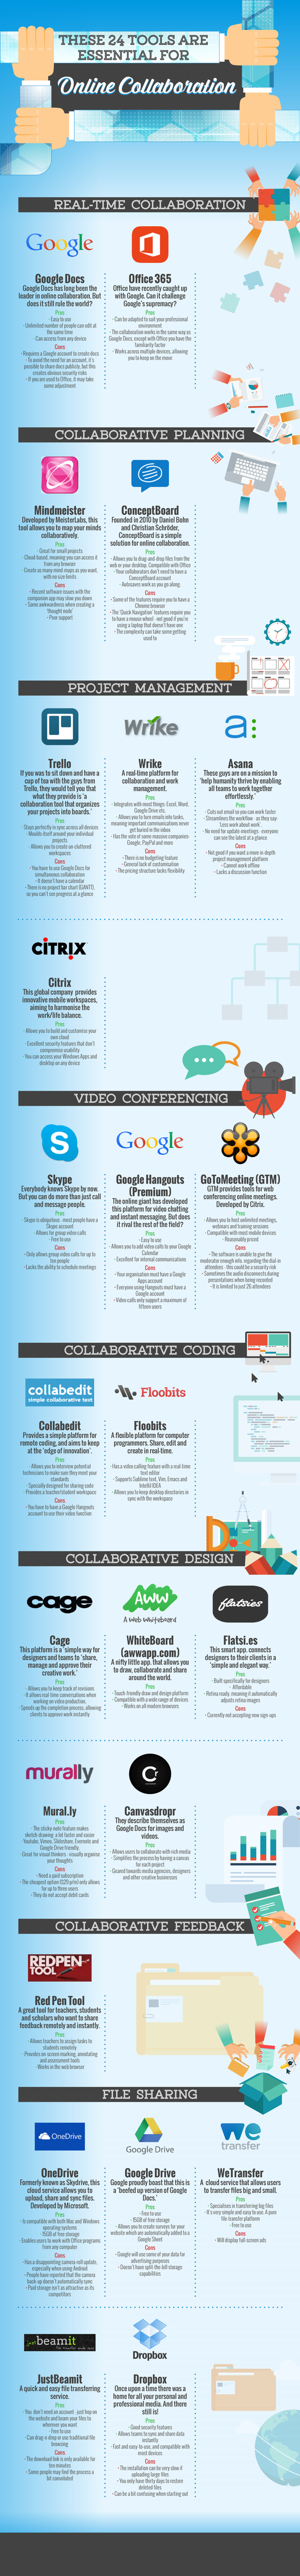 24 Tools Which Are Essential for Online Collaboration Infographic